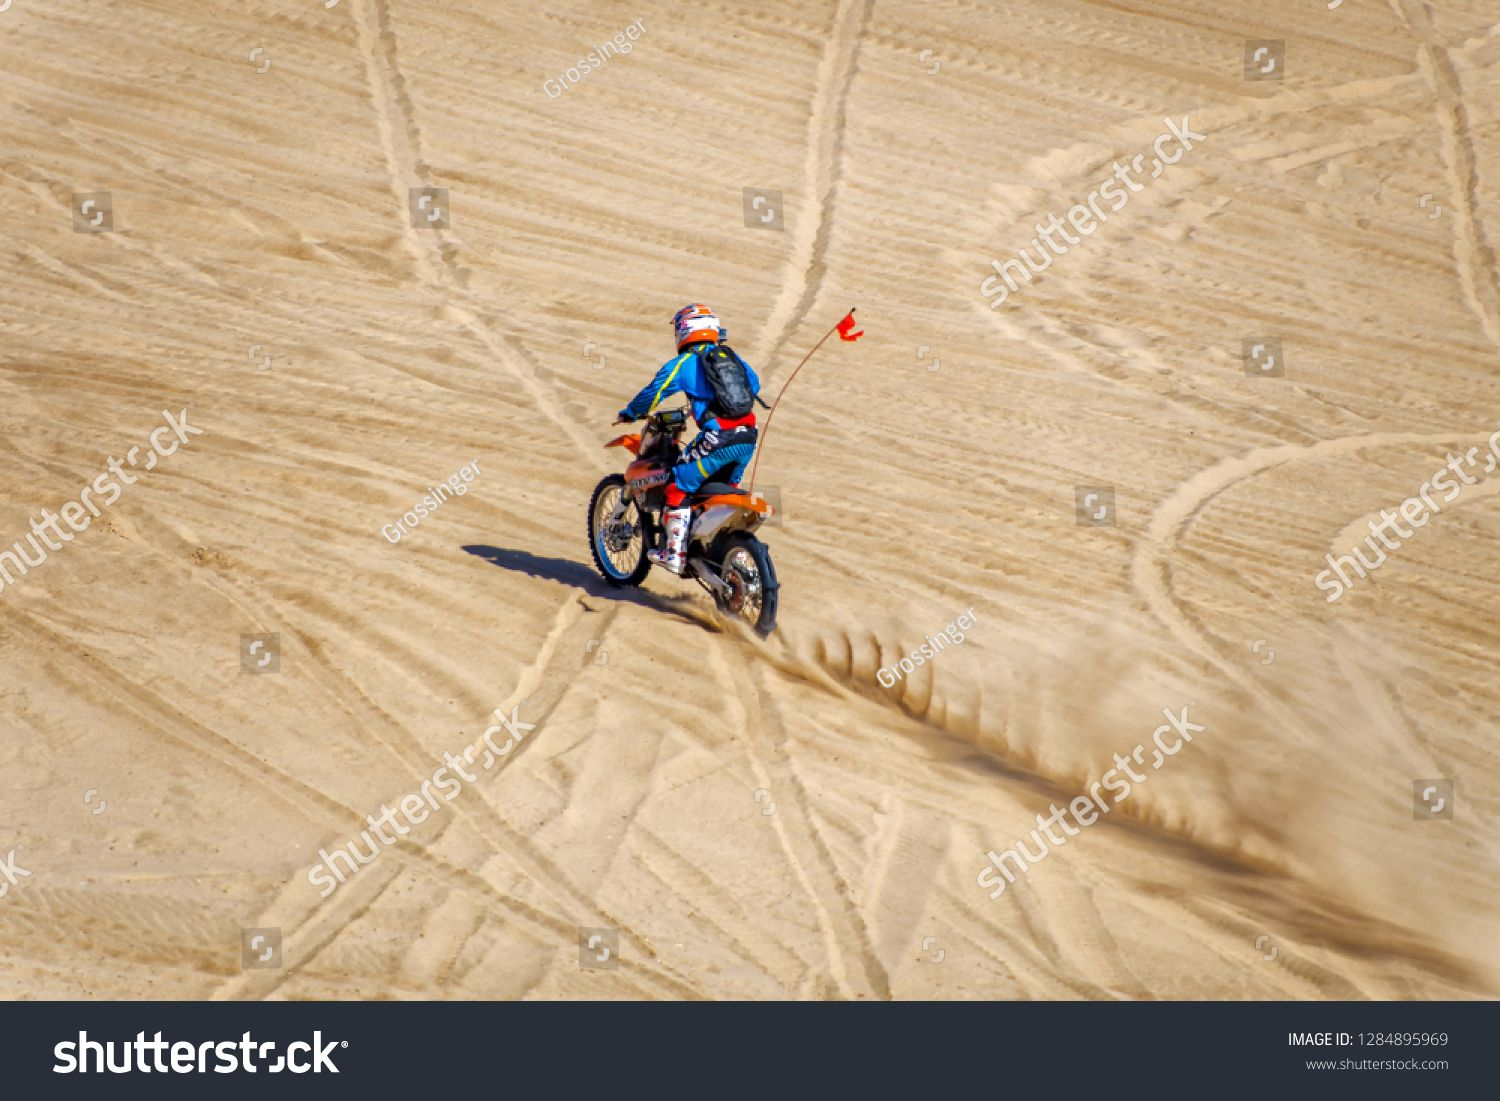 Dirt Bike Roff Road Motorcycle Riding A Sand Dune In The Imperial